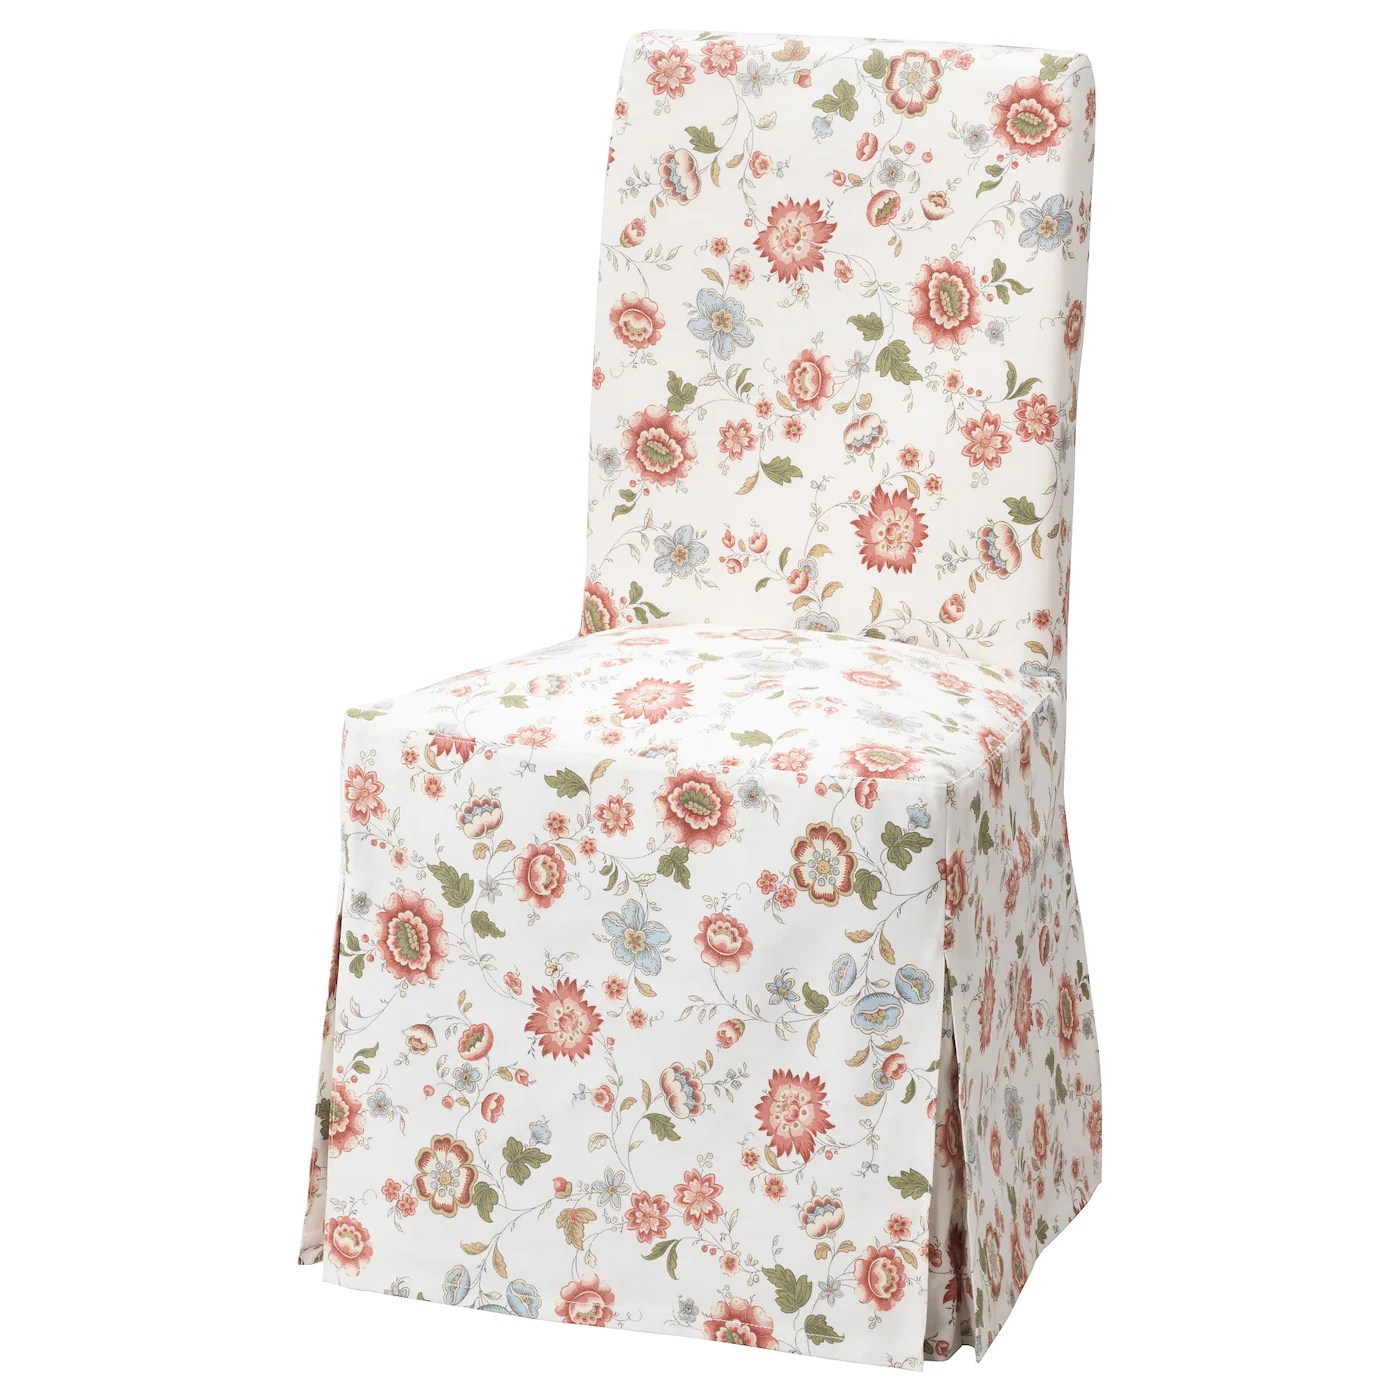 loose chair covers ikea hanging vermont dining henriksdal cover long